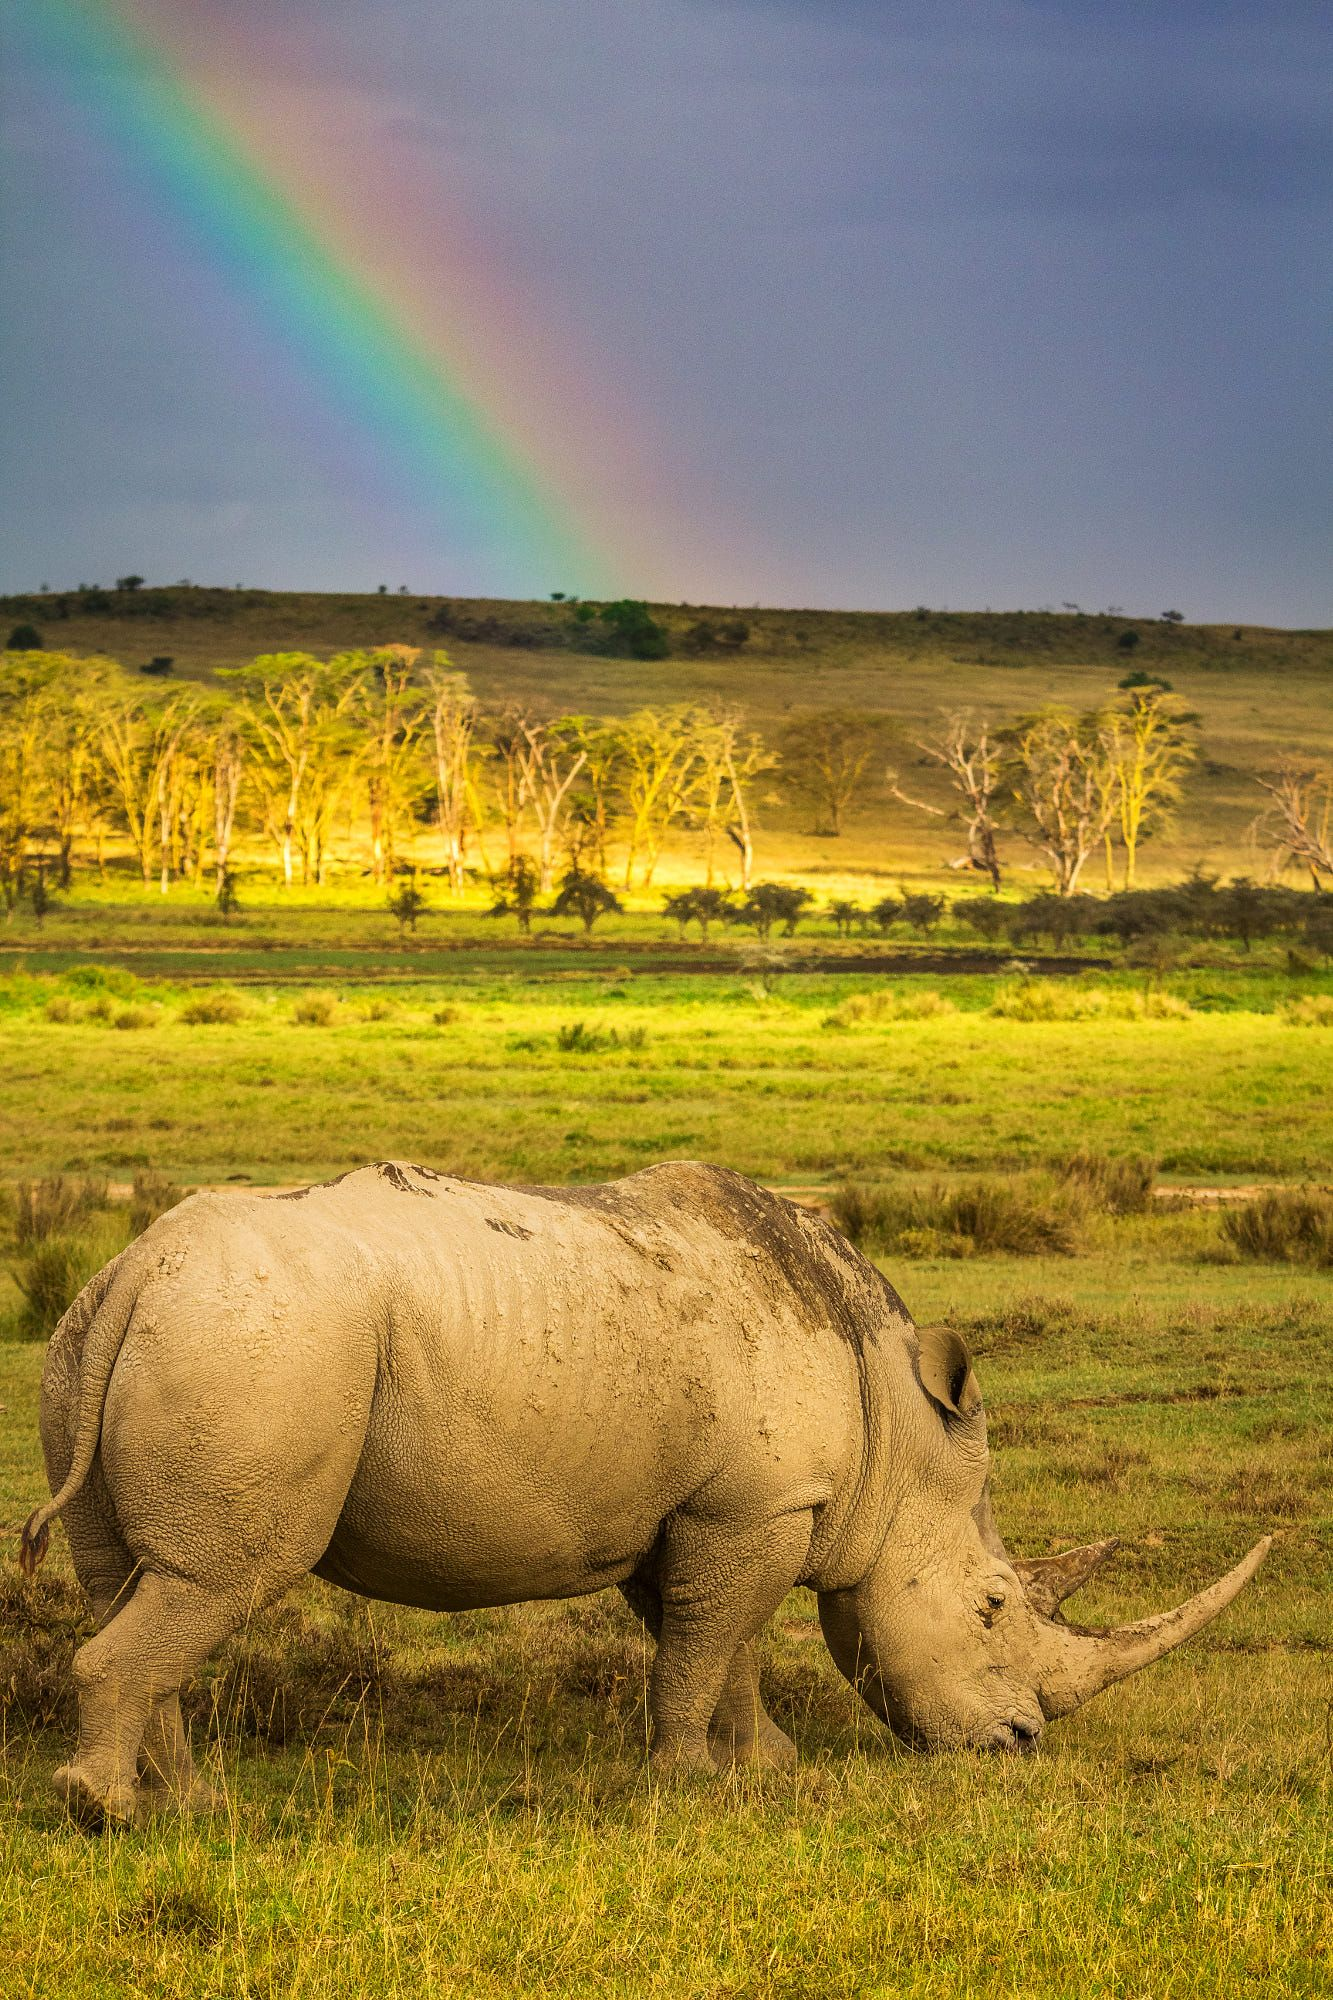 A White Rhino grazing, with a ranbow in the background, in